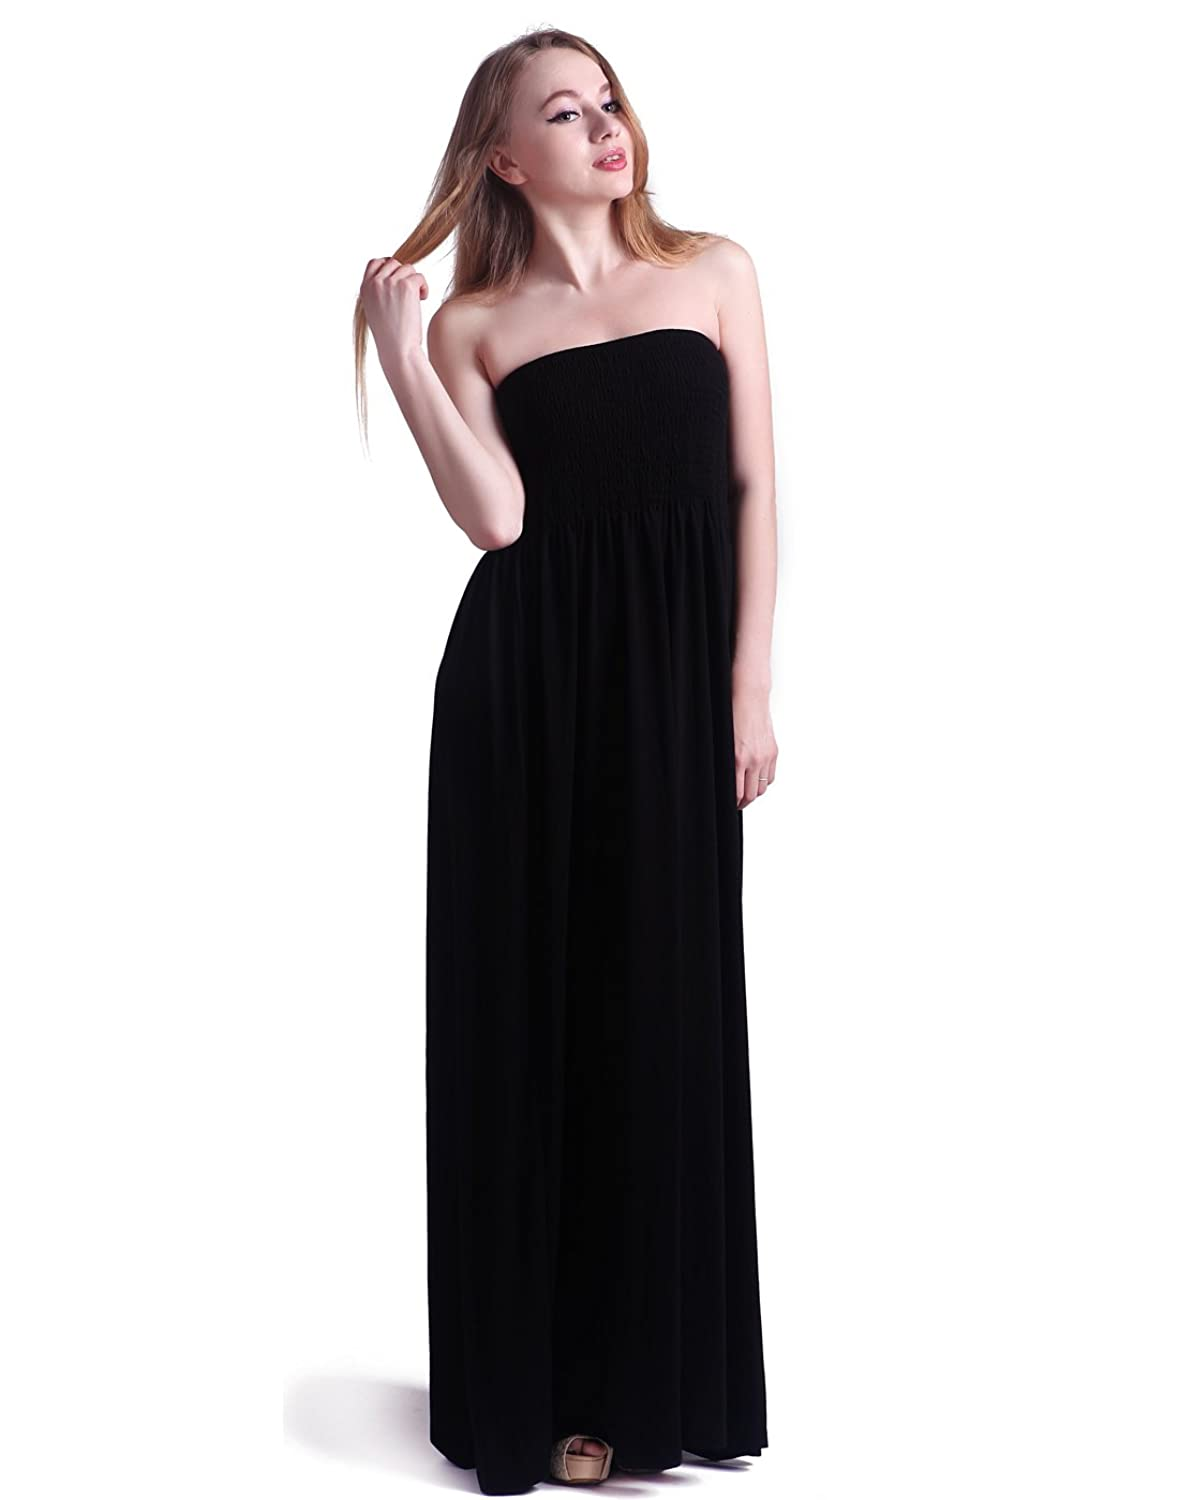 HDE Women's Strapless Maxi Dress Plus Size Tube Top Long Skirt ...